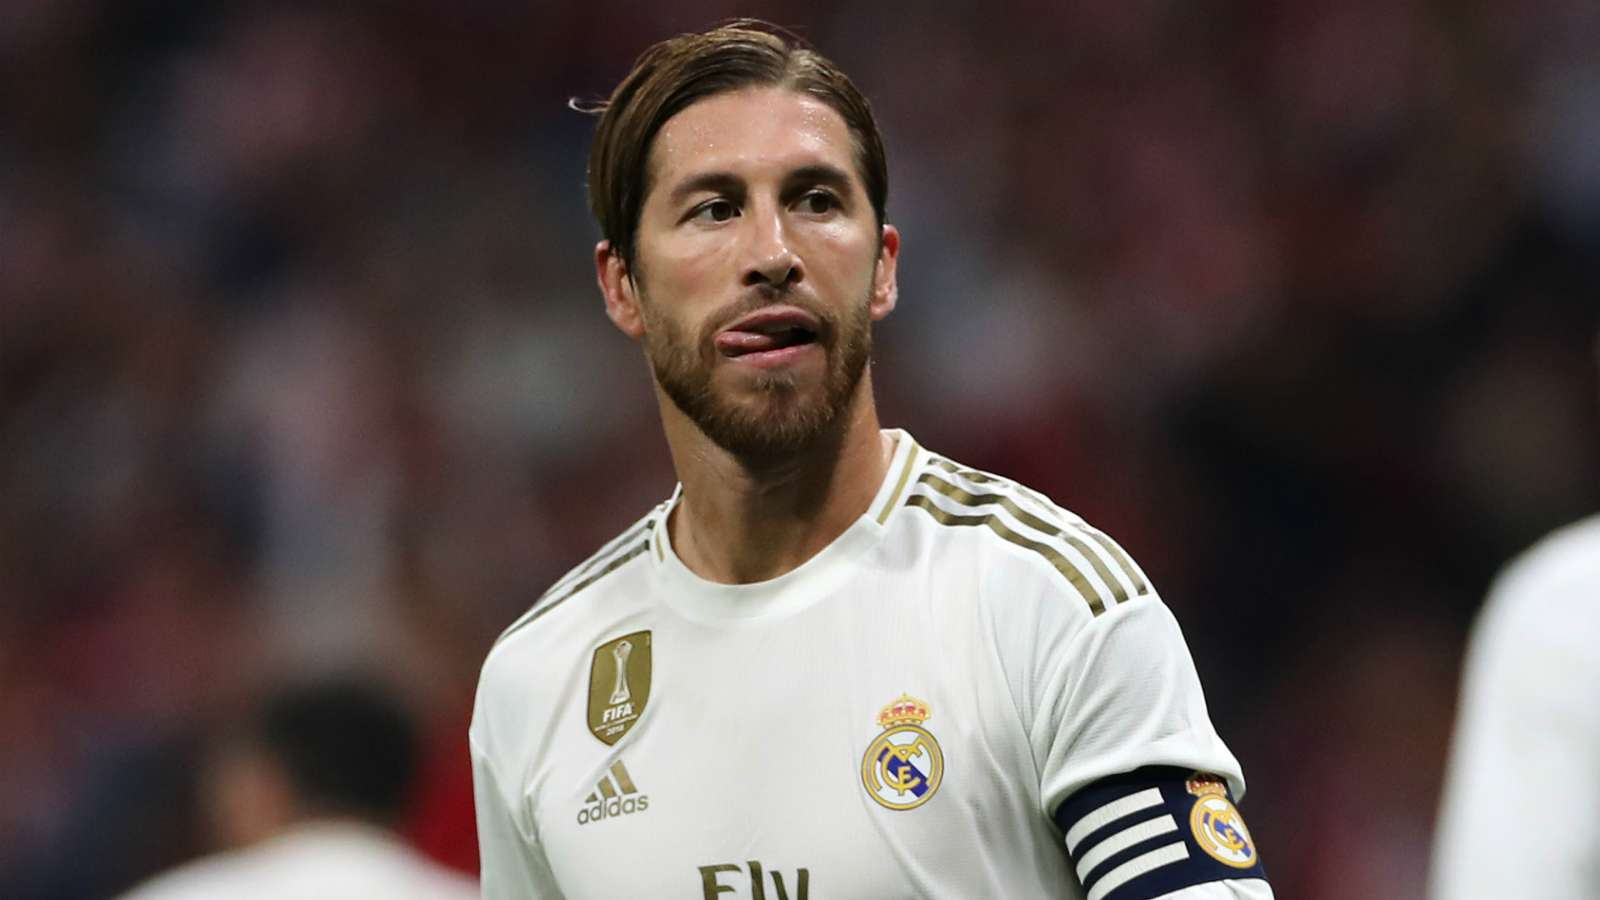 Ramos overtakes Messi and becomes the most involved in the Clásico